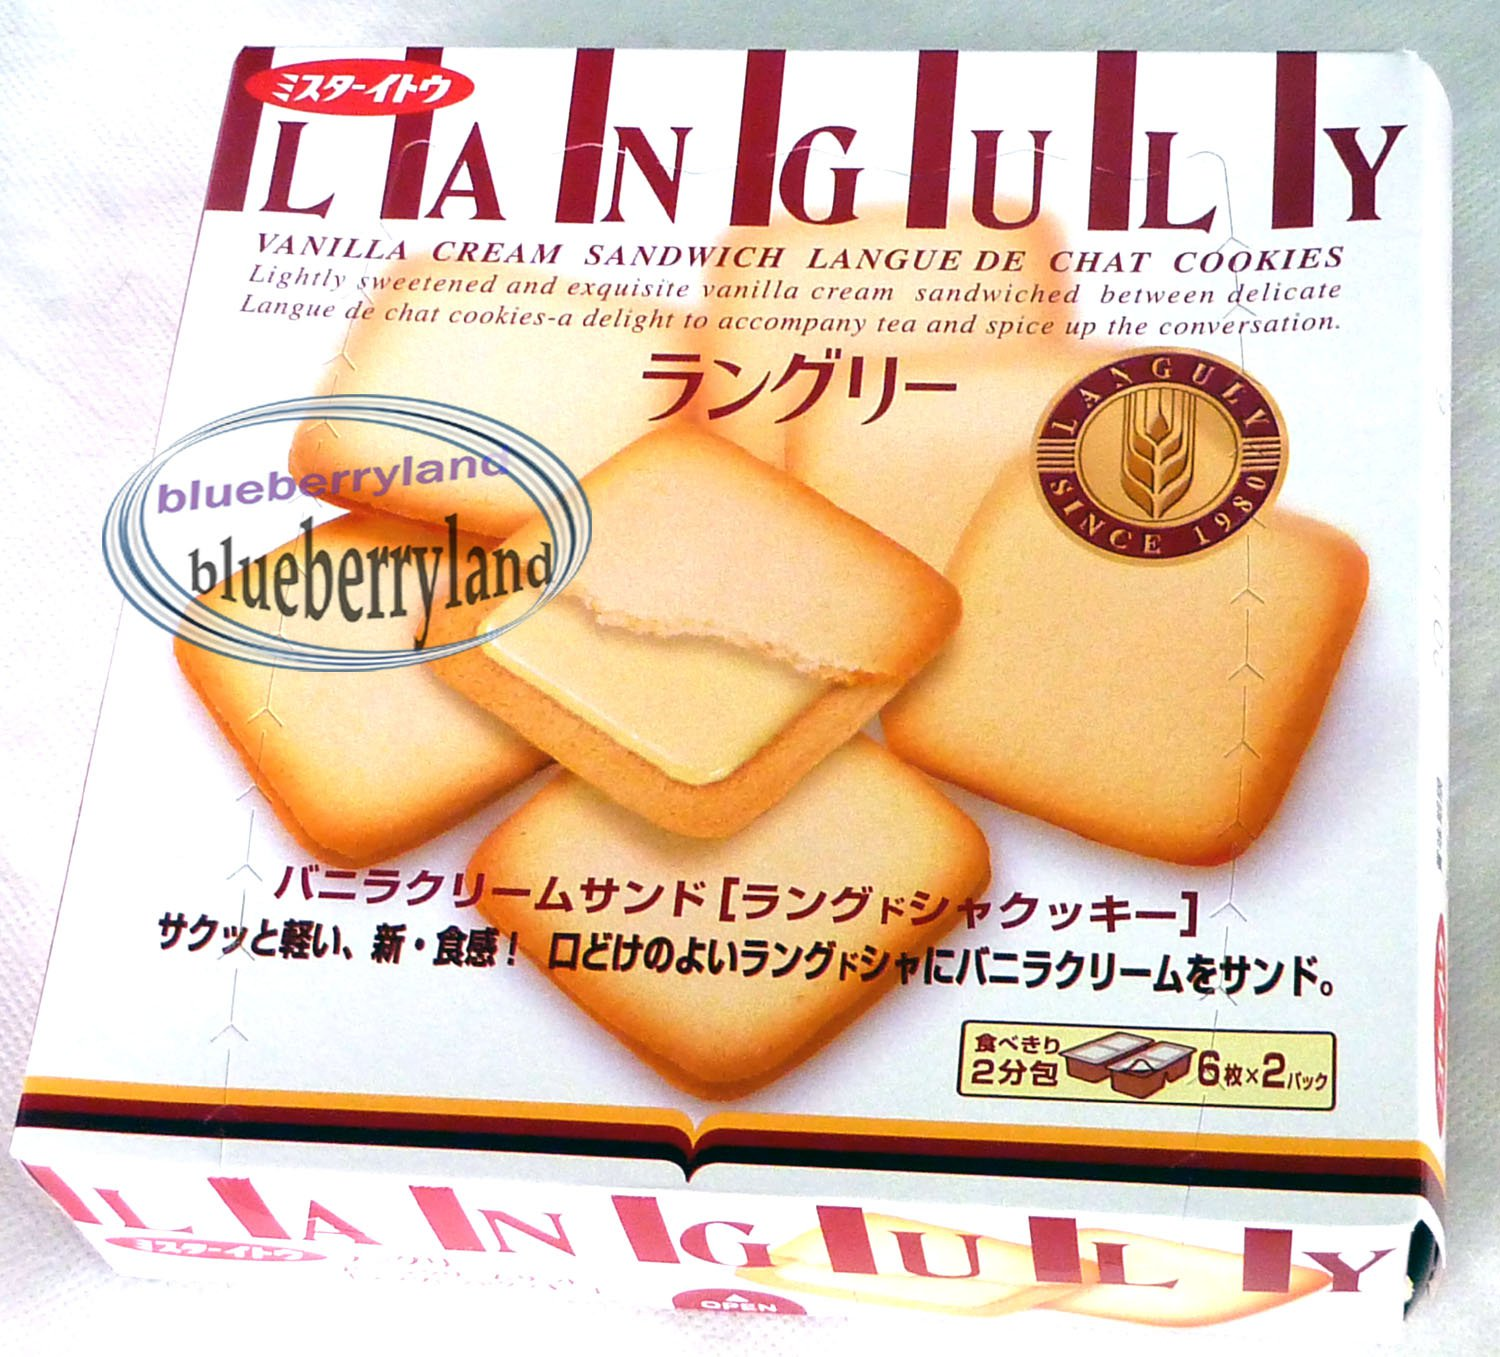 Japan Languly Vanilla Cream Sandwich langue de chat cookies sweets biscuits